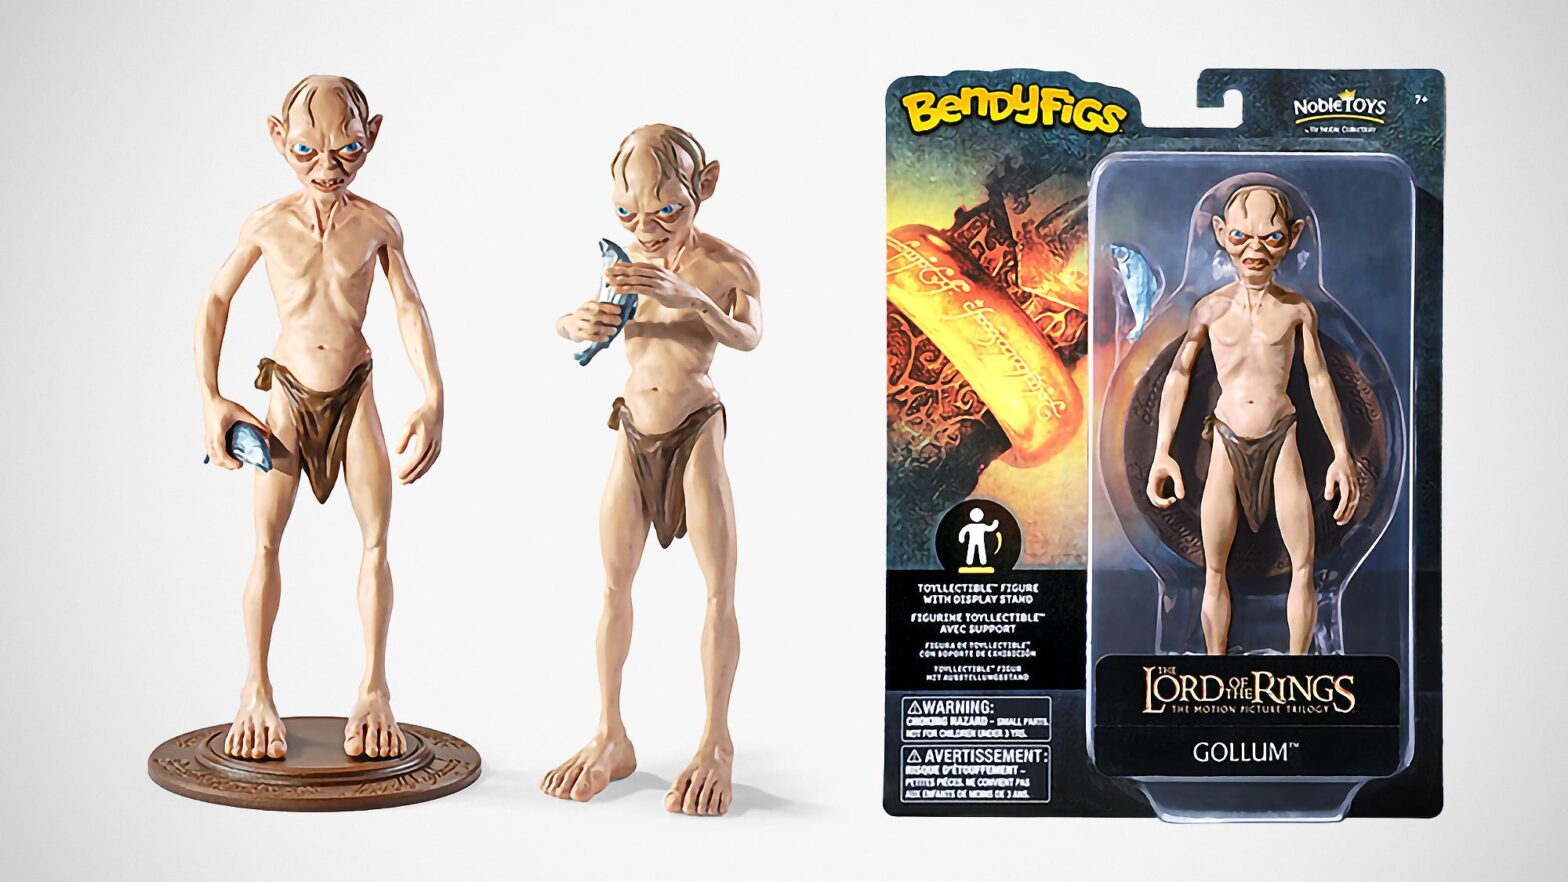 BendyFigs Bendable 7-inch Action Figures